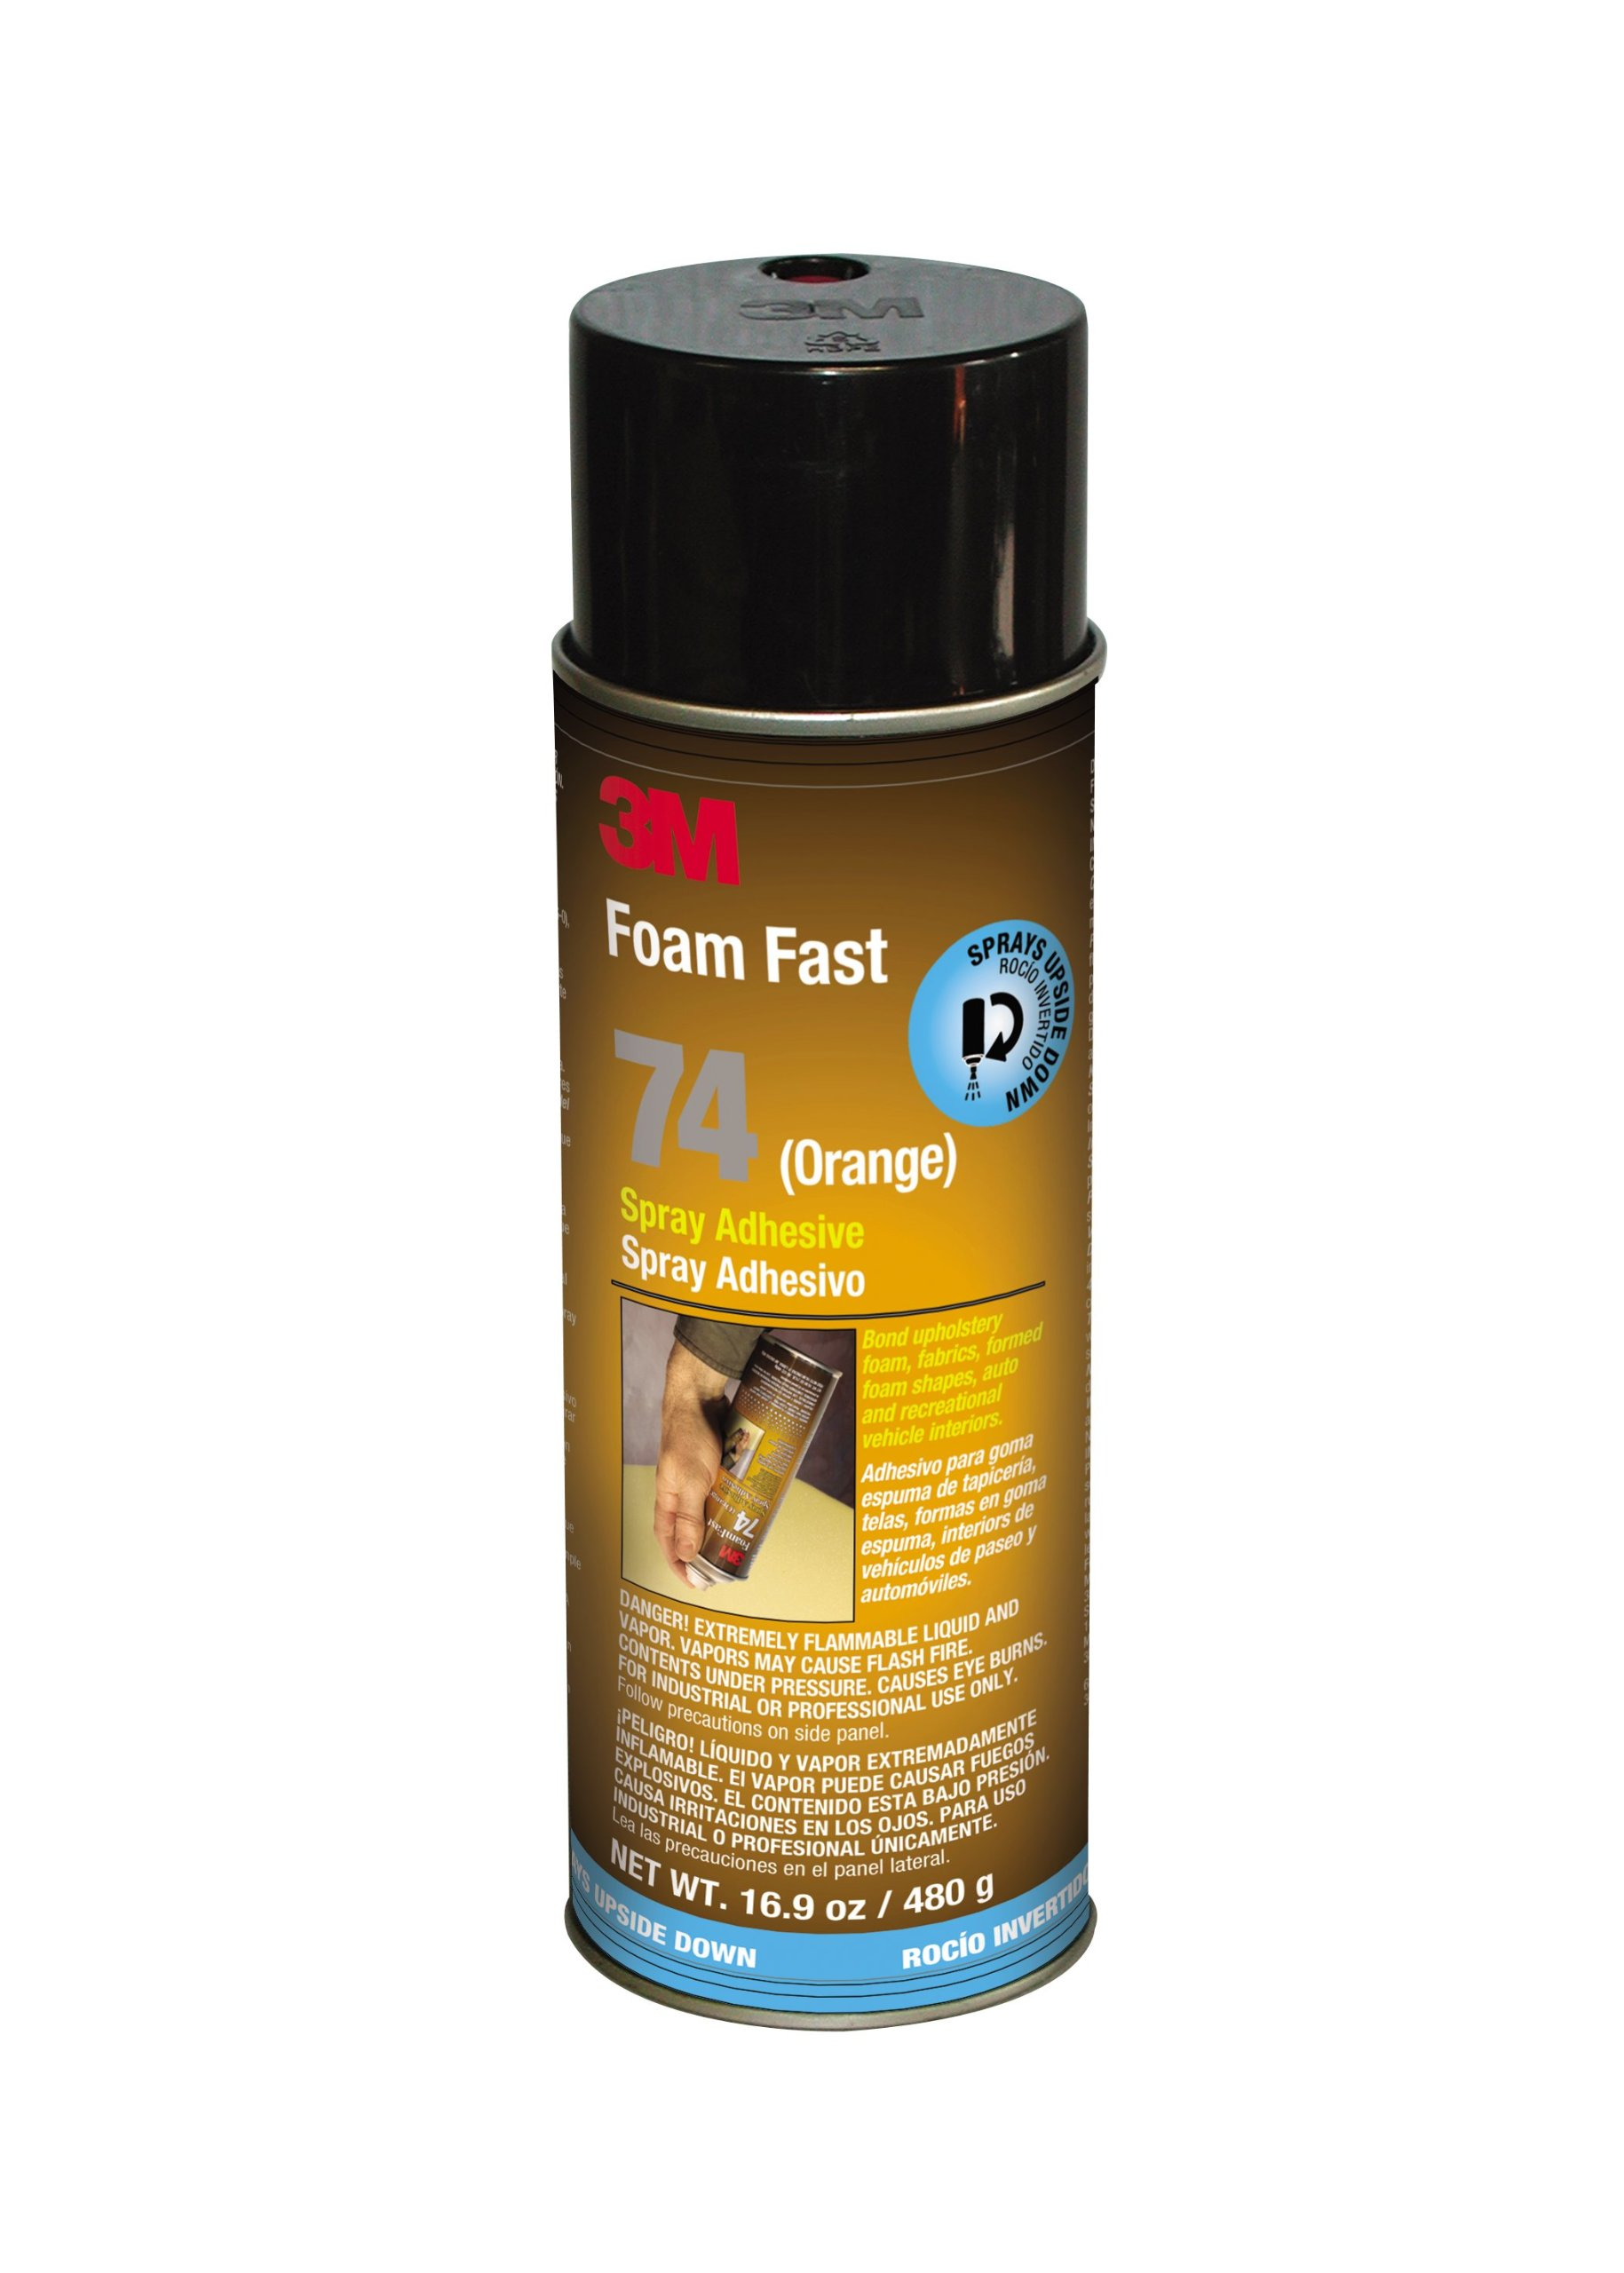 3M Foam Fast 74 Spray Adhesive Orange, INVERTED 16.9 fl oz Aerosol Can (Pack of 1)